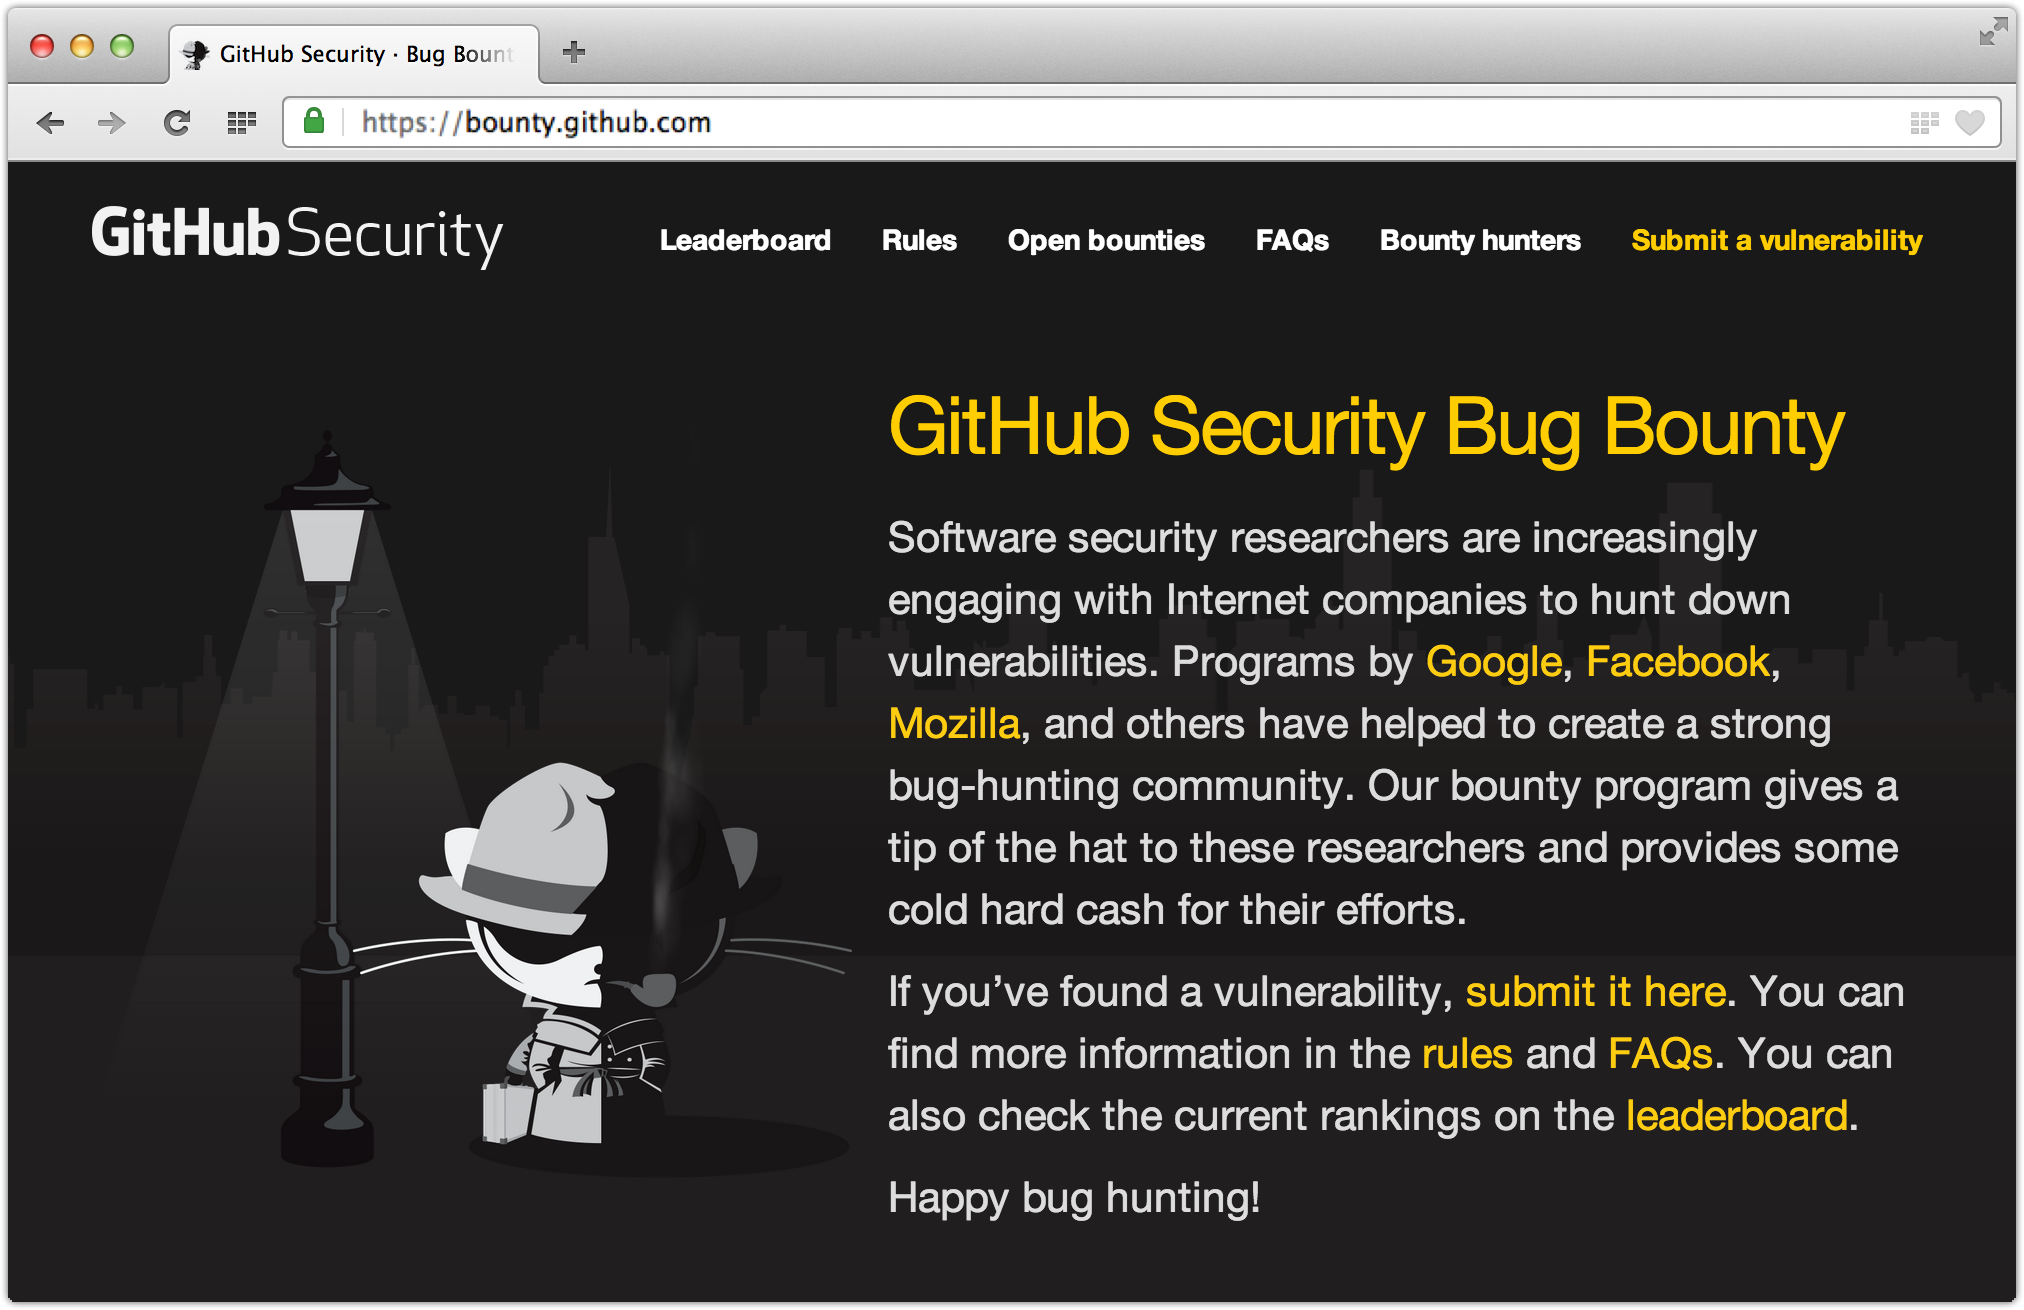 GitHub launches Bug Bounty program, offers between $100 and $5,000 for security vulnerabilities